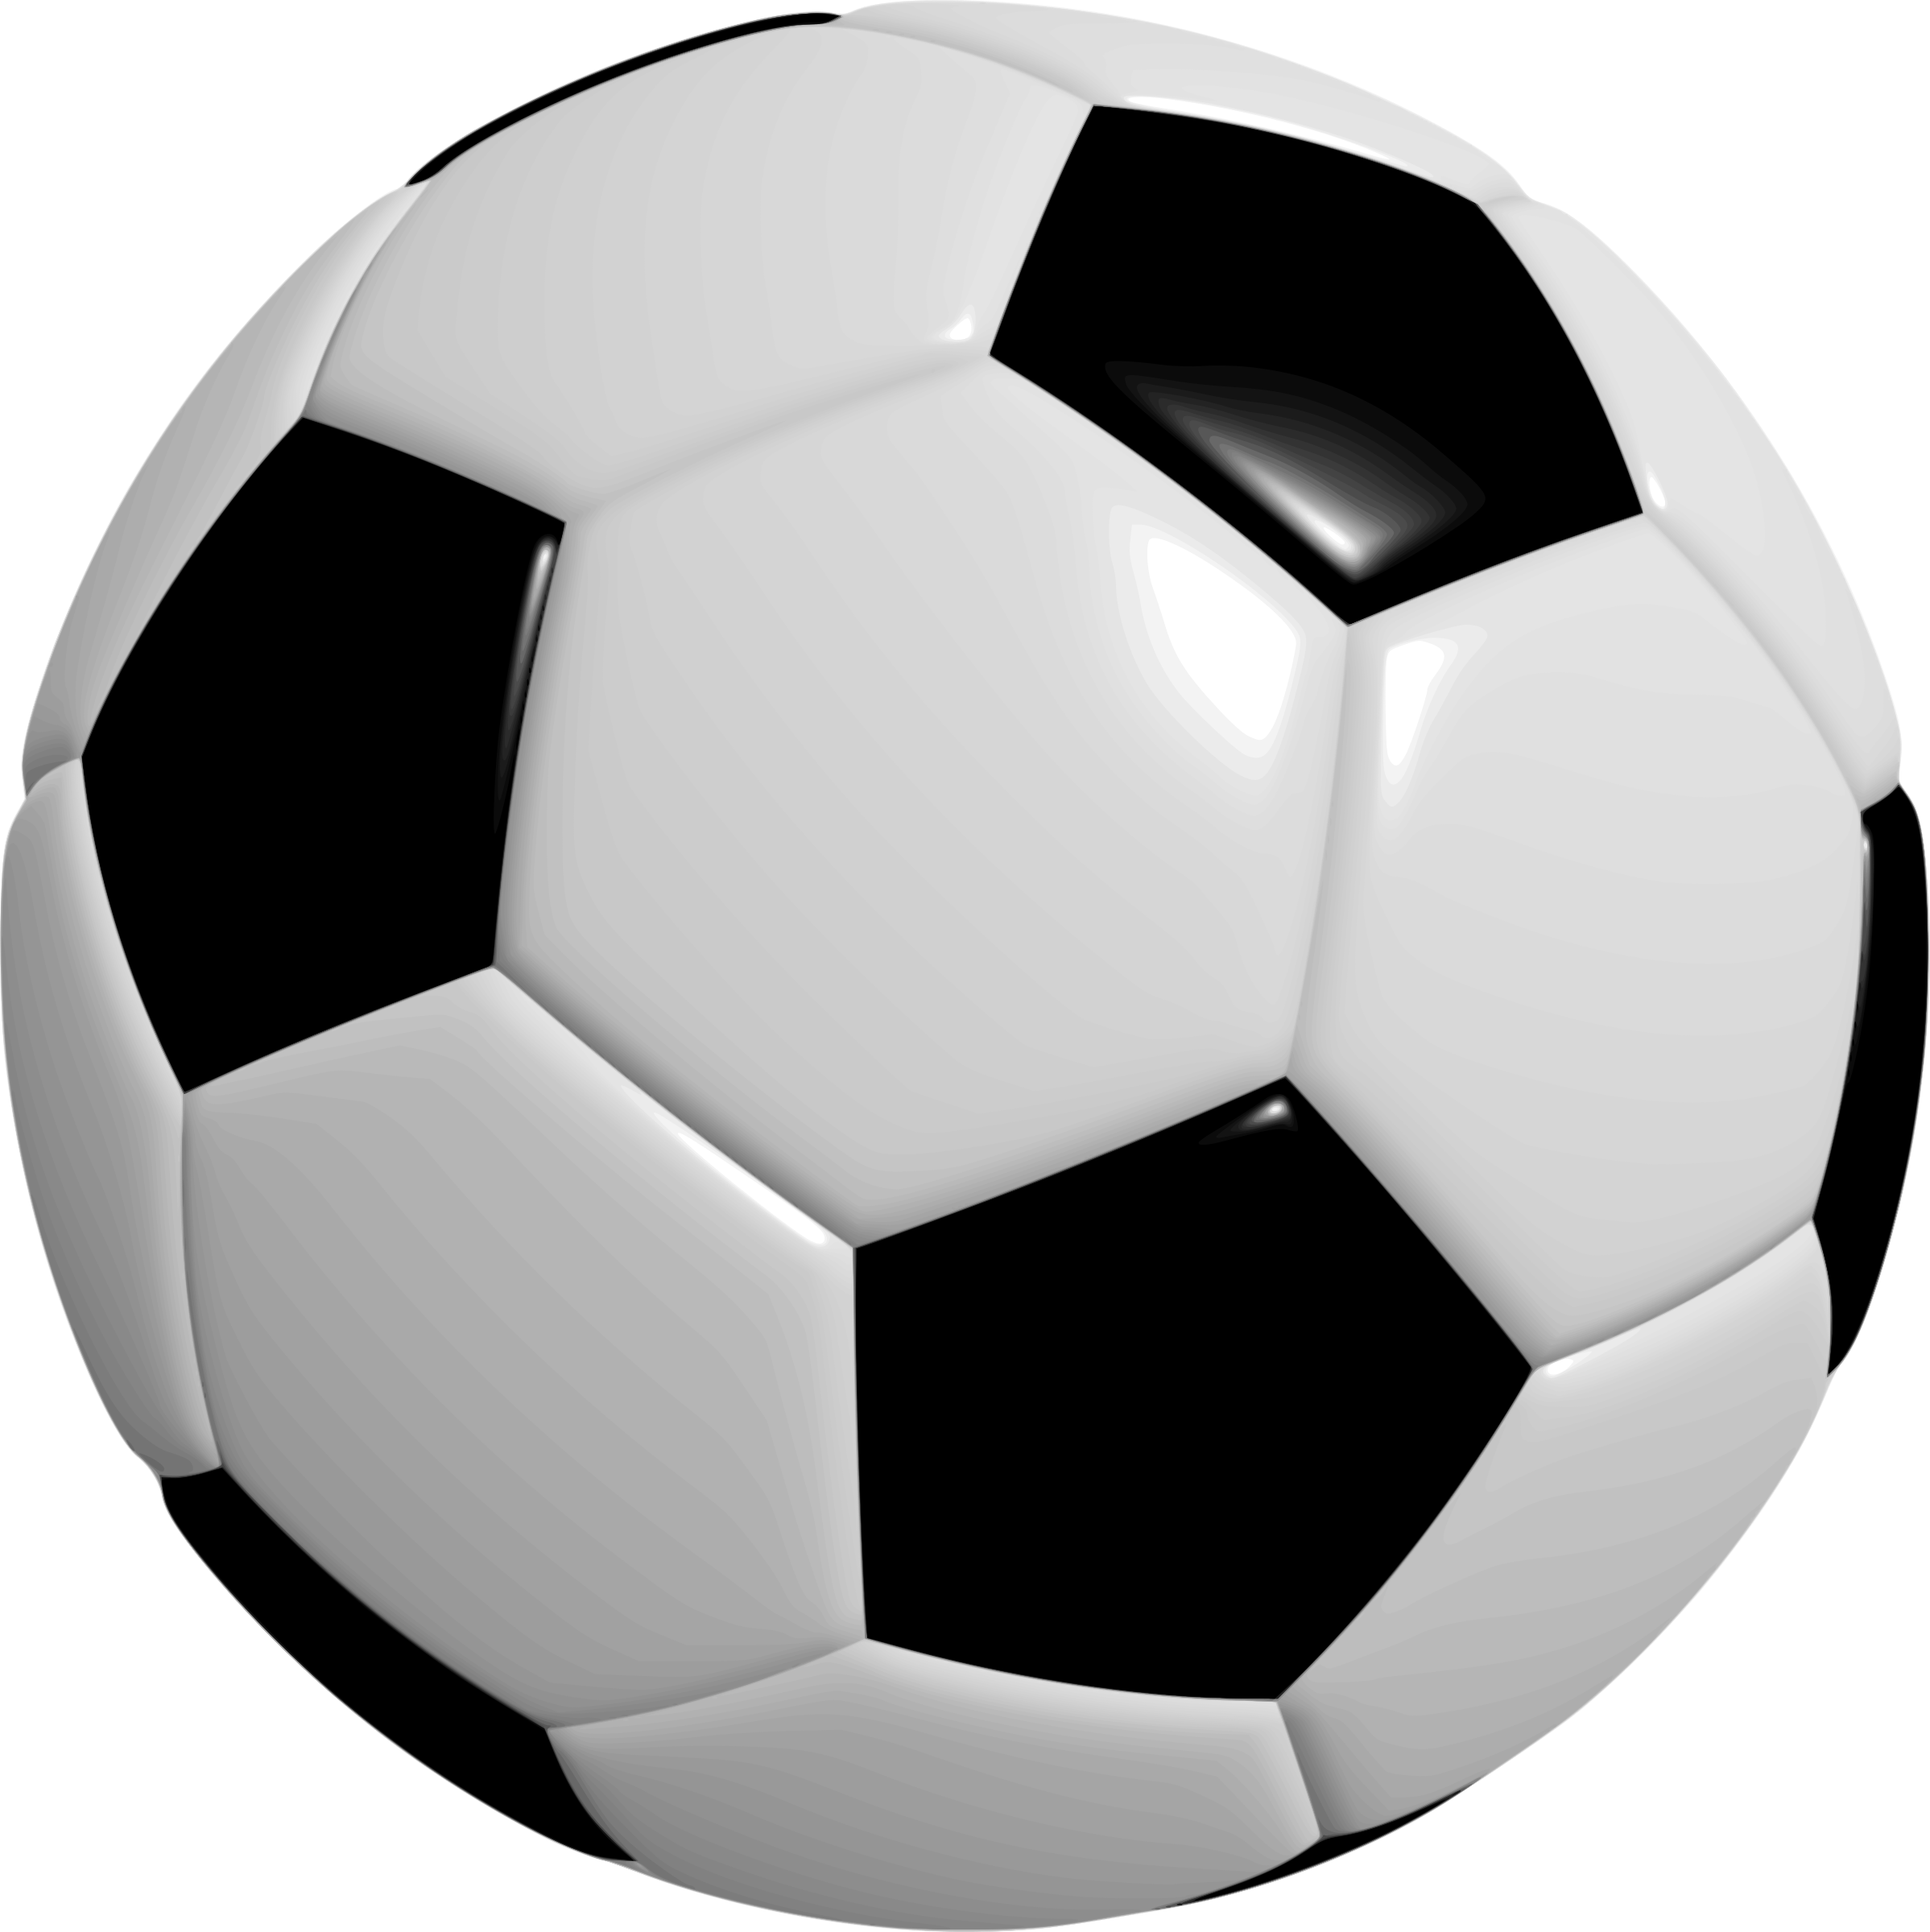 Soccer ball picture freeuse Soccer ball - ClipartFest picture freeuse